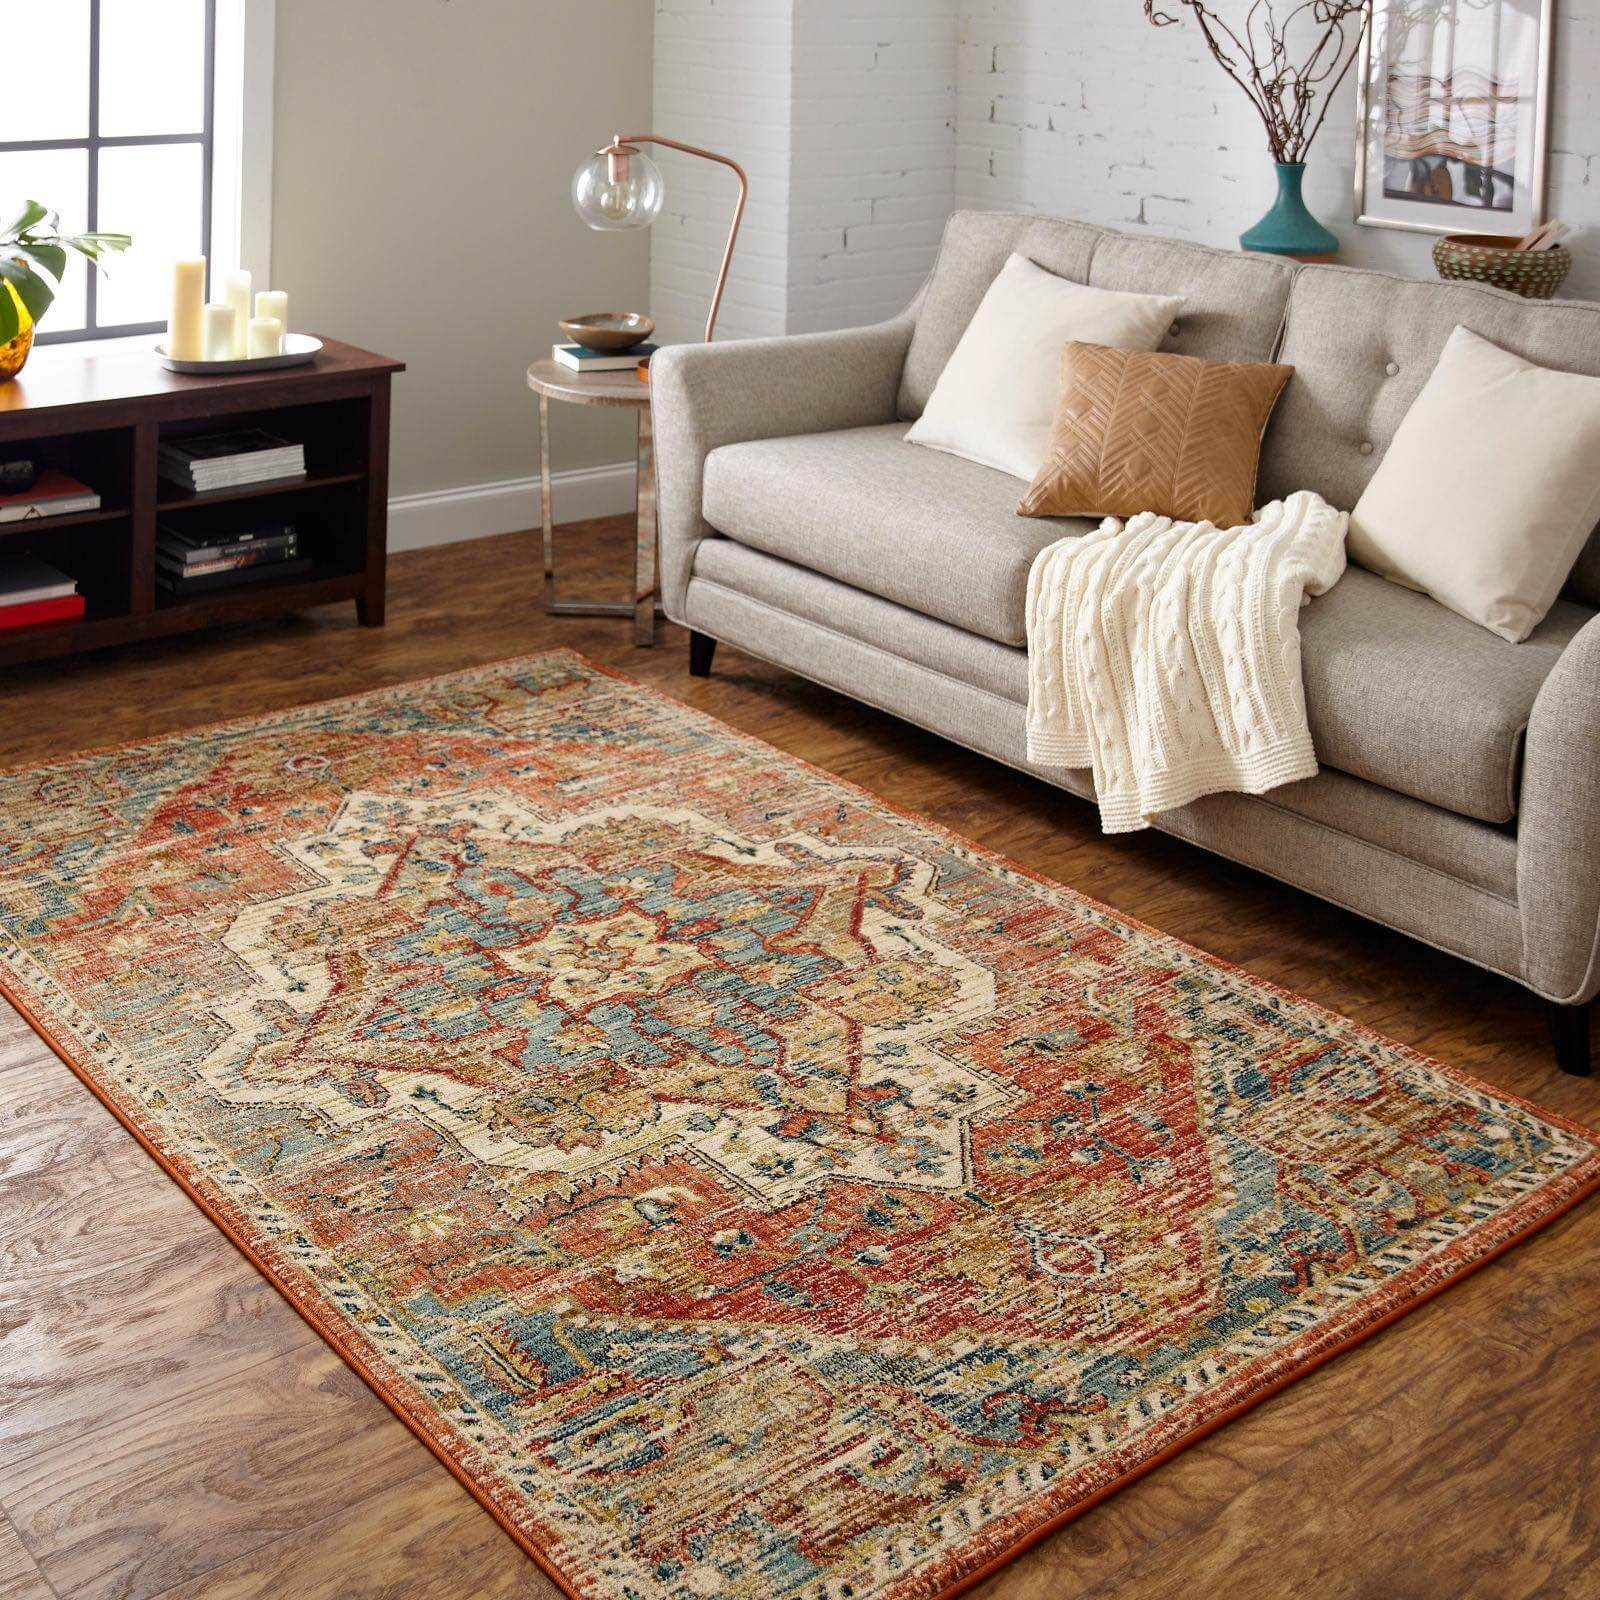 Select a Rug for Your Living Area | Staff Carpet